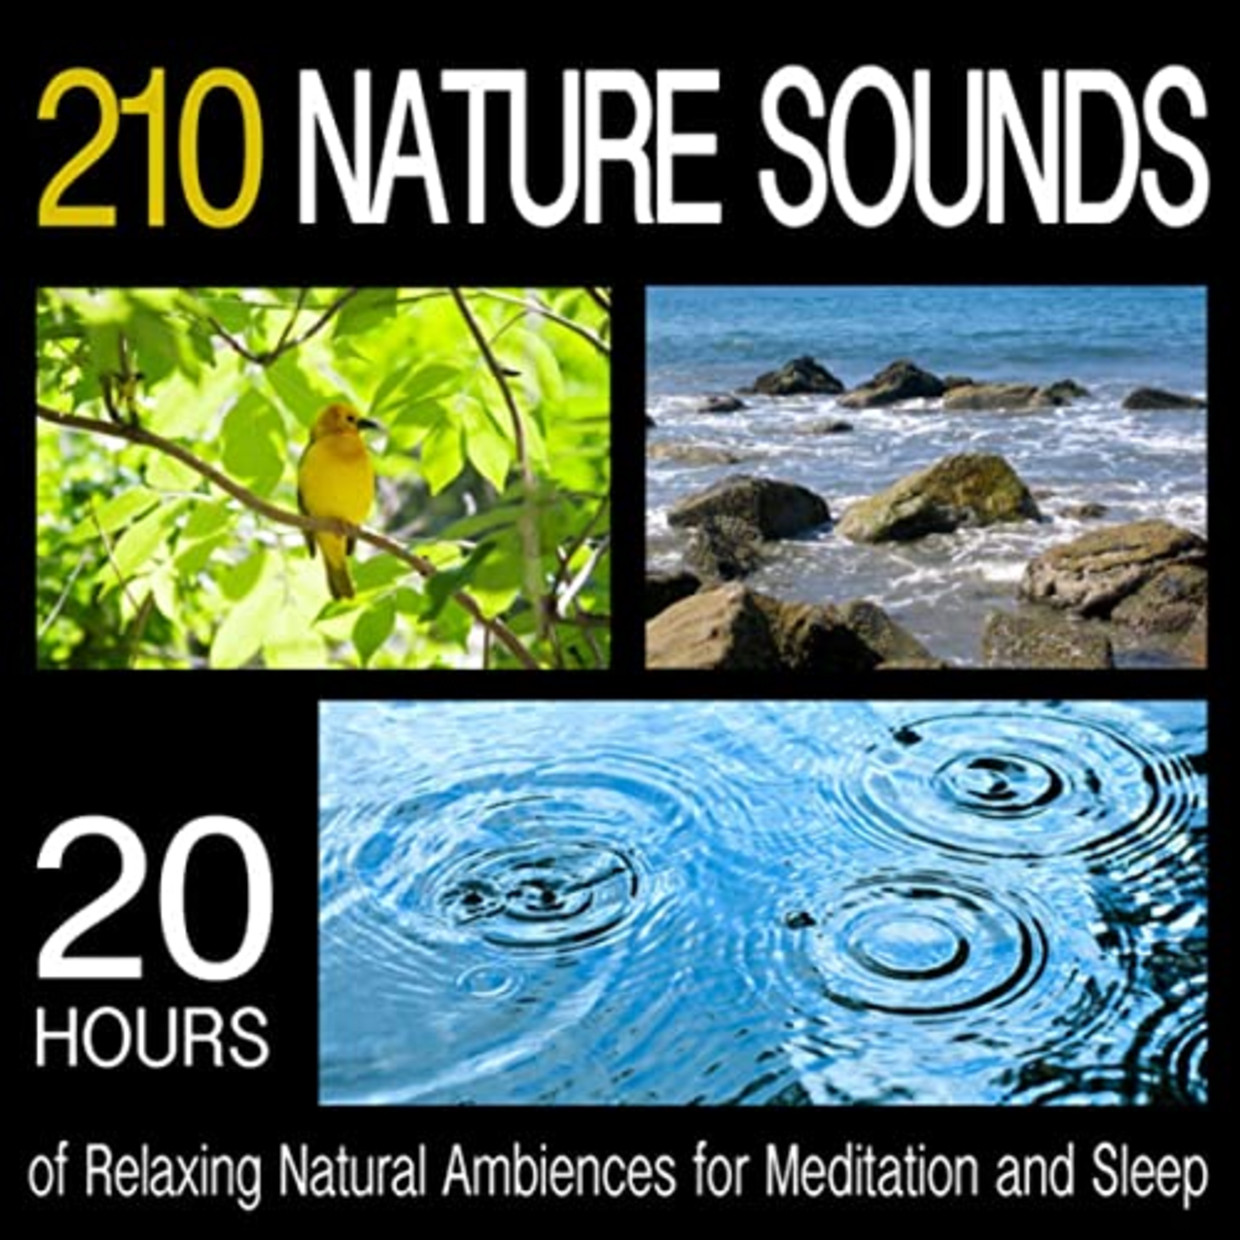 '210 Nature Sounds' (2011) van Pro Sound Effects Library. Beeld rv